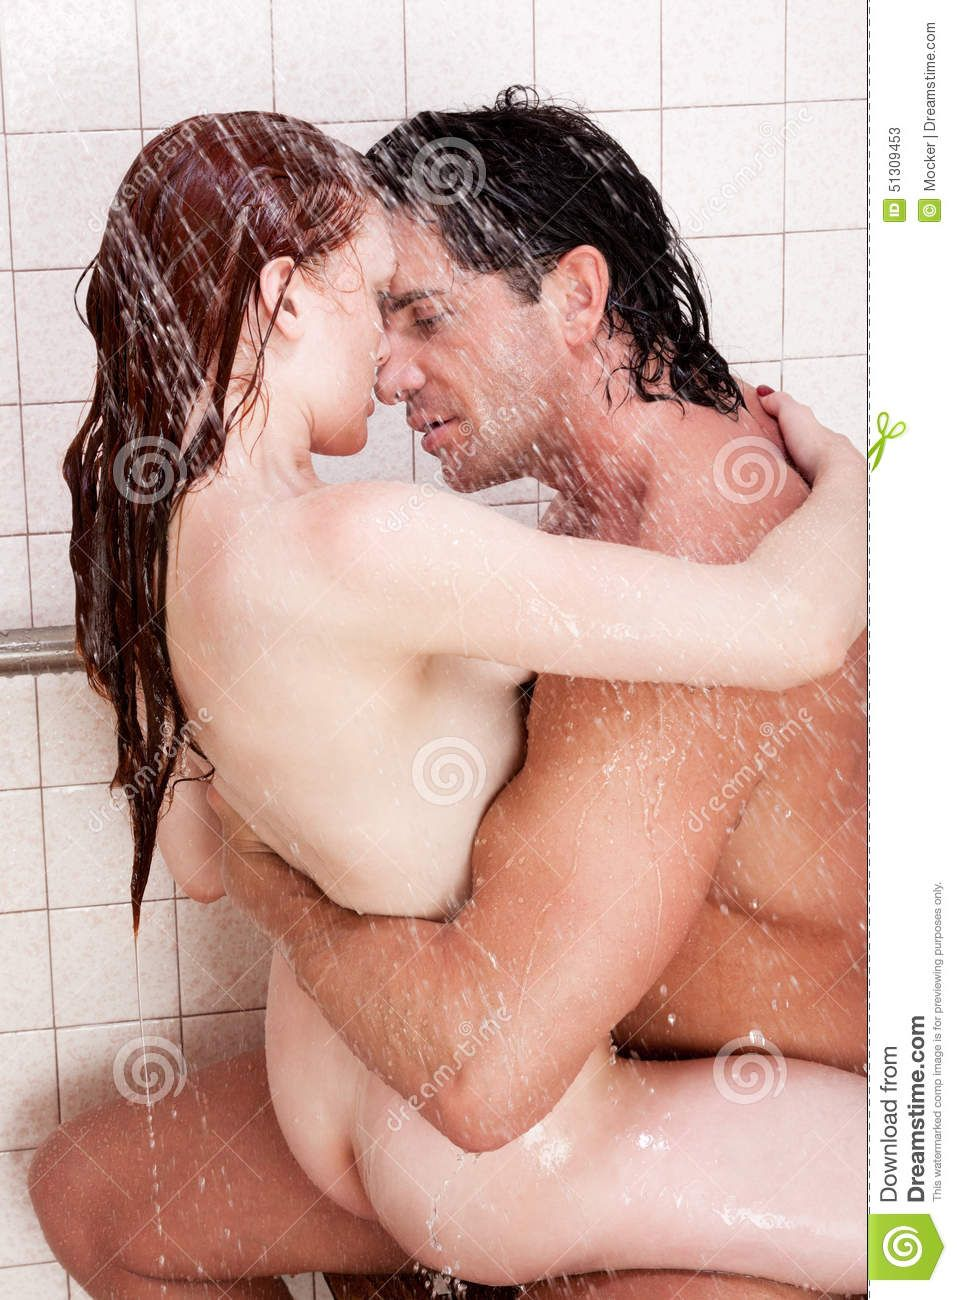 3 Shemales Having Sex man and woman showering naked having sex - adult images